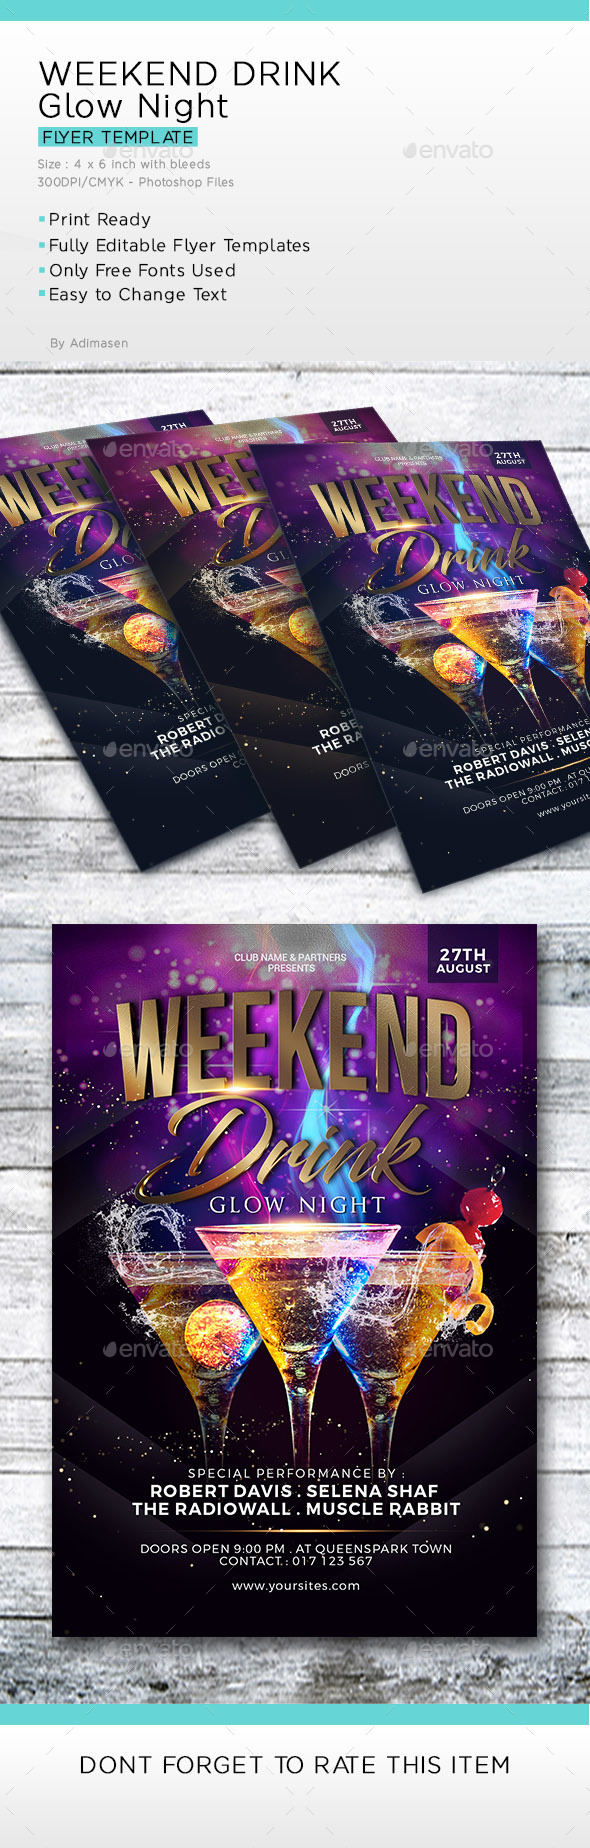 Weekend Drink Glow night flyer Template - Clubs & Parties Events